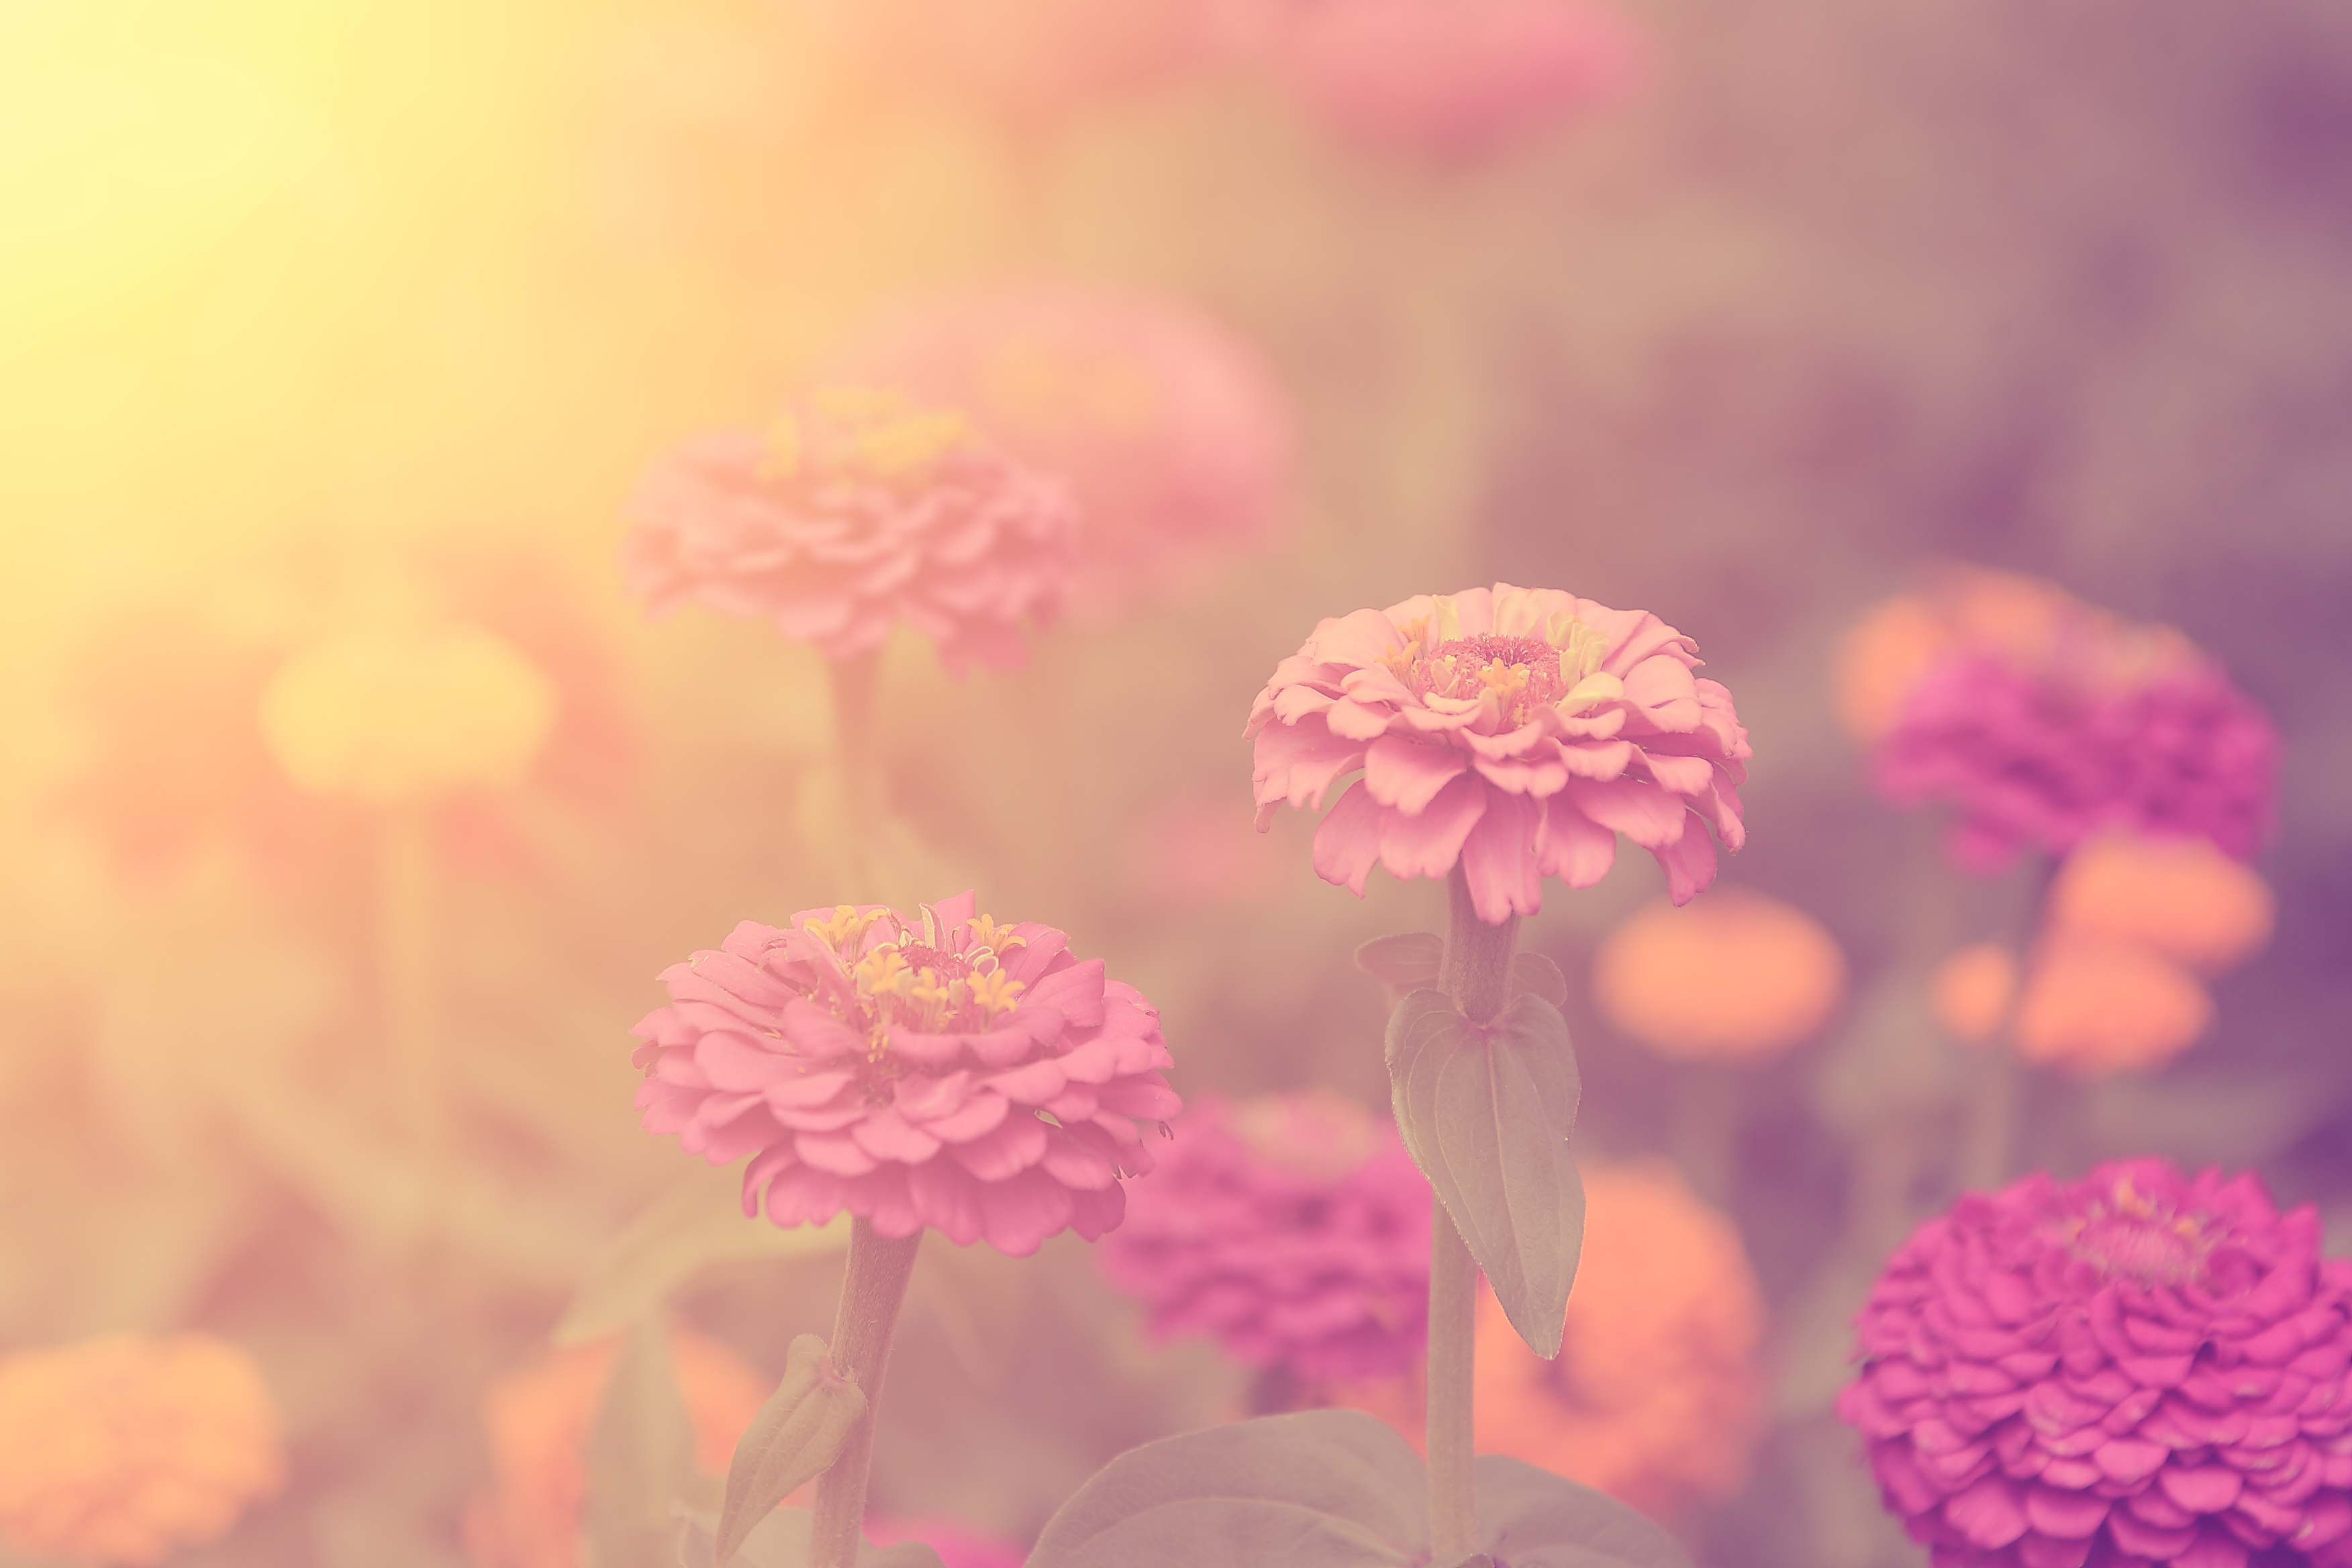 Vintage style picture of wildflowers